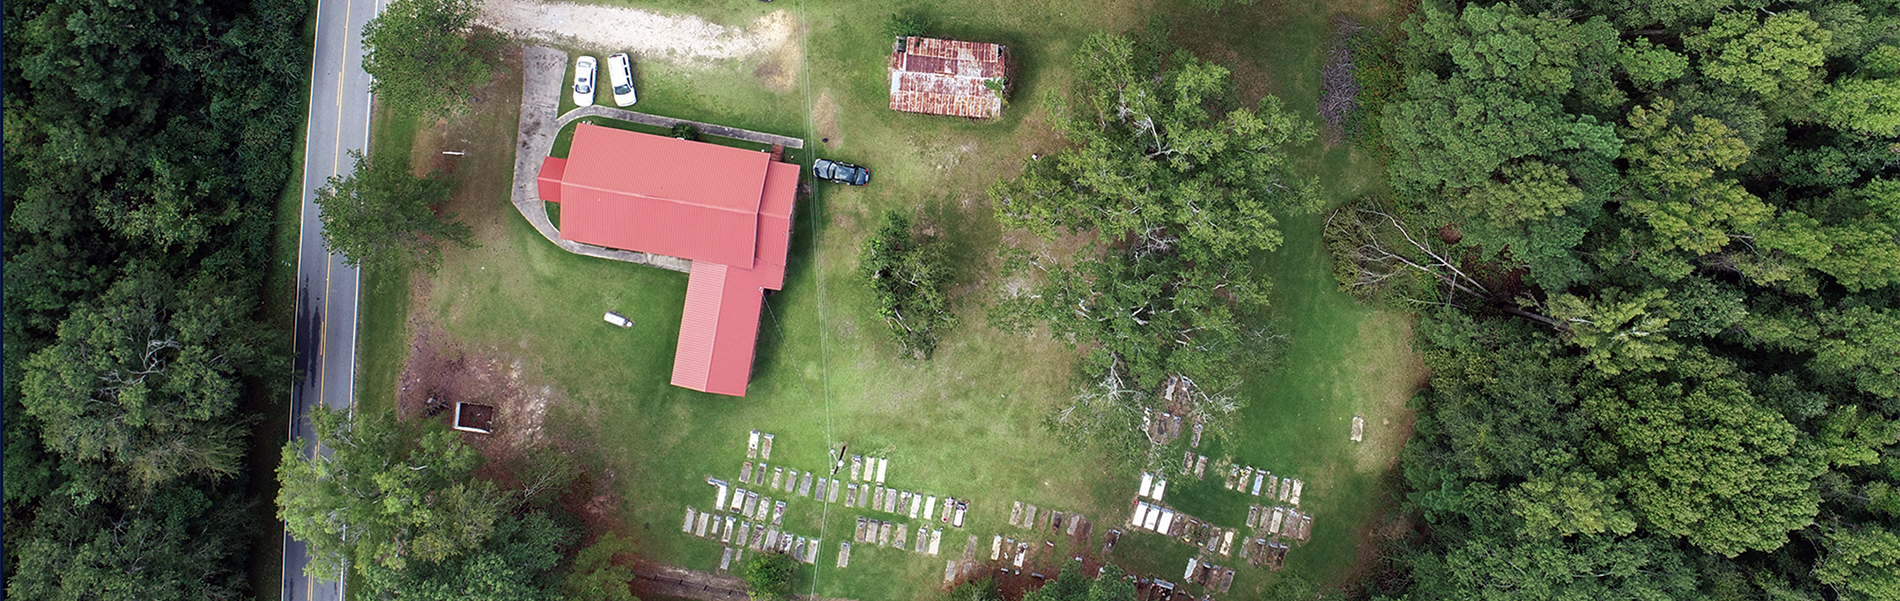 Birdseye view of grassy site with red-roofed L-shaped structure